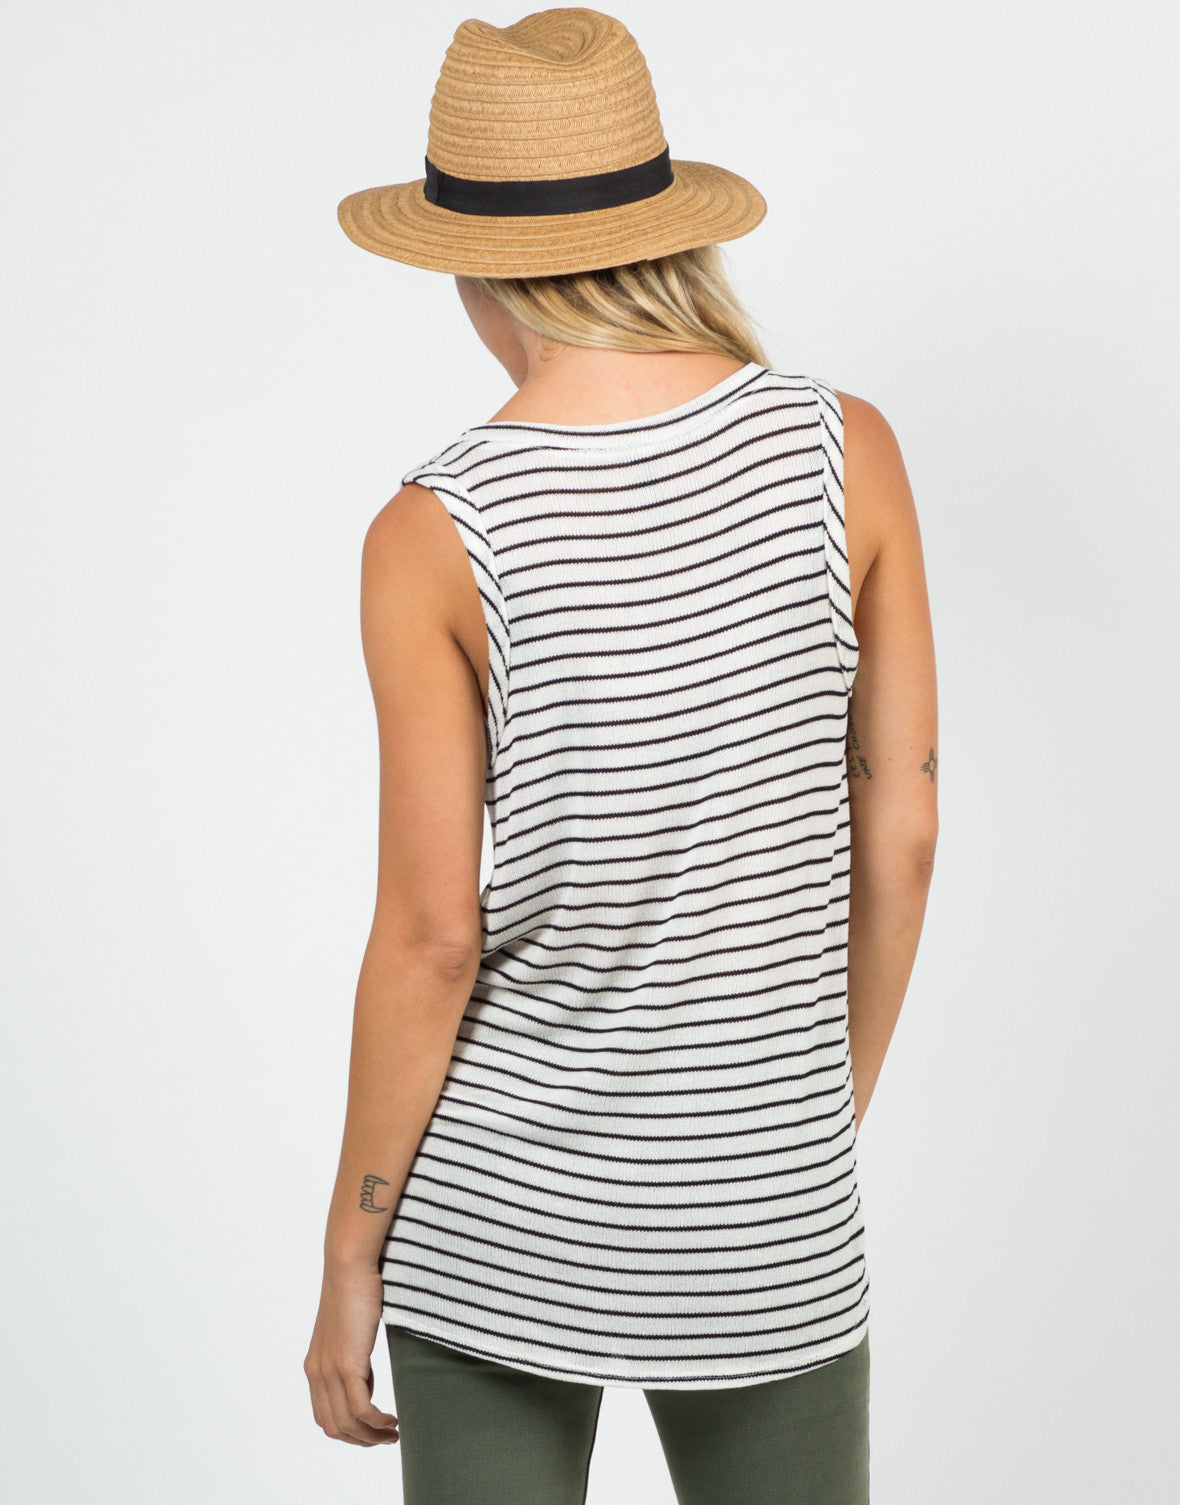 Back View of Knitted Striped Tank